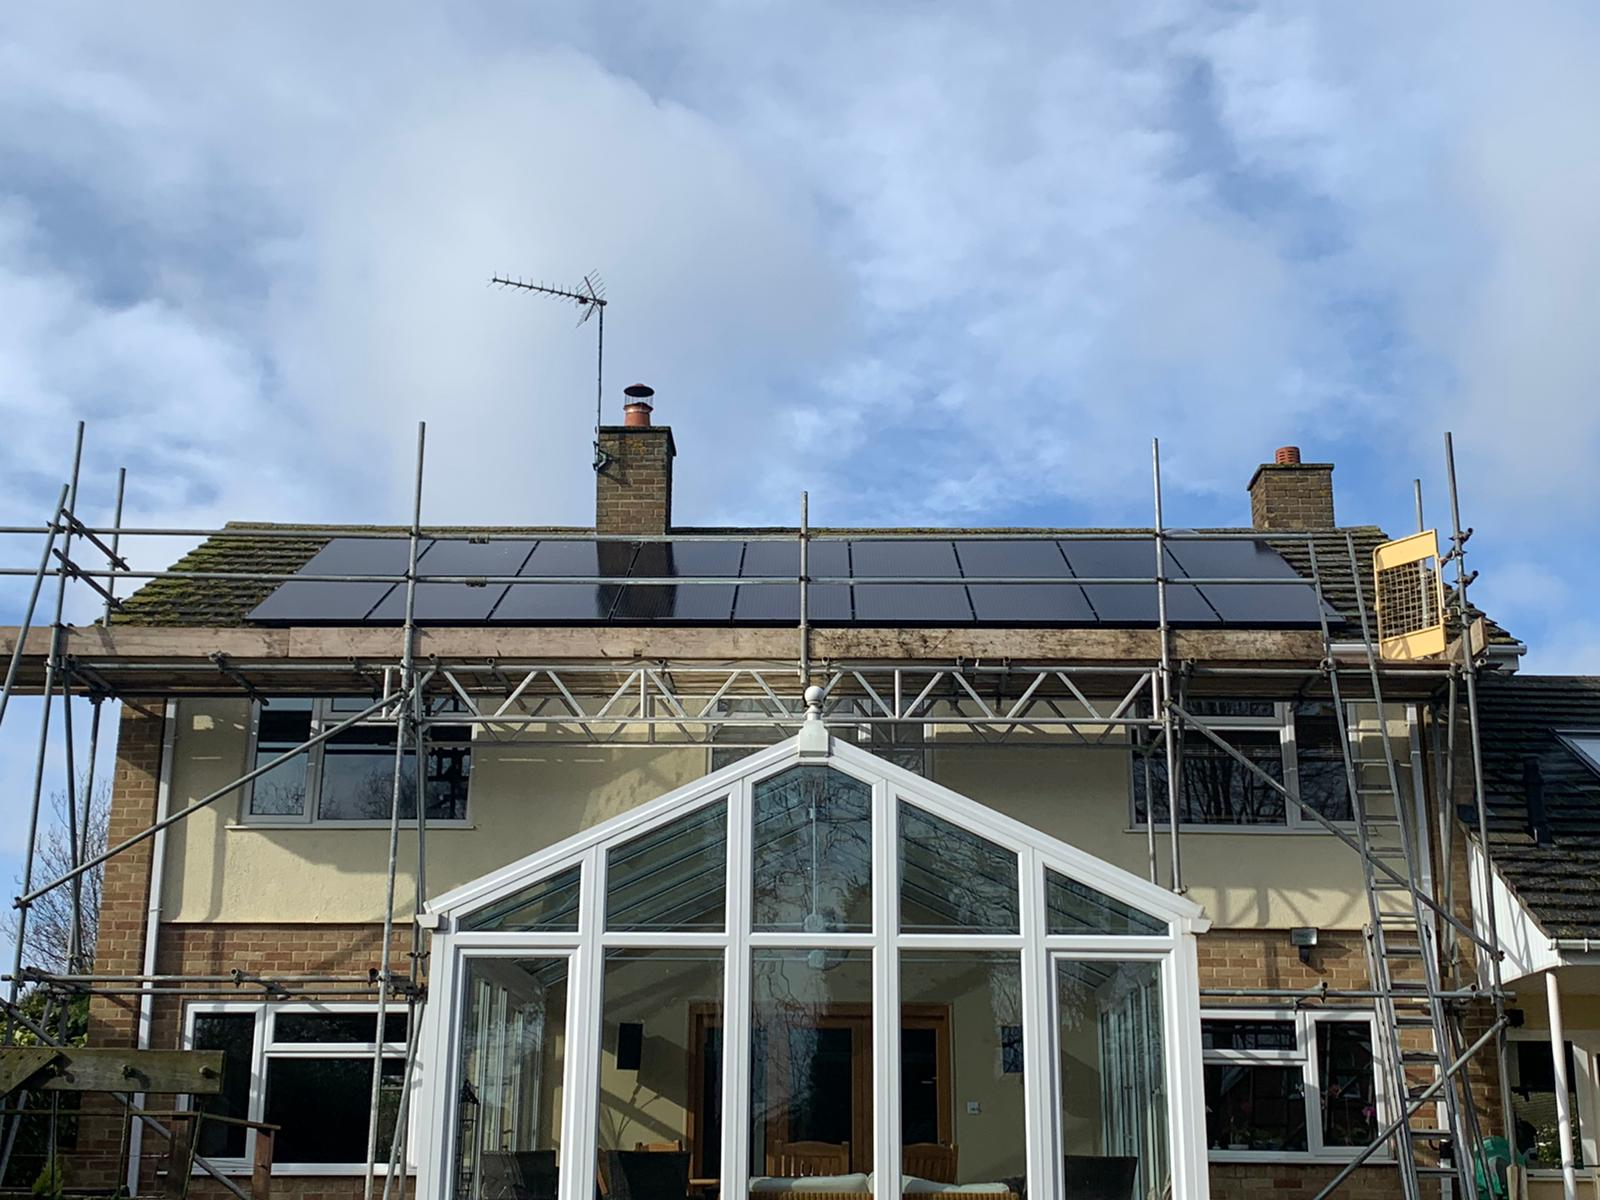 solar panel installation on roof with scaffolding